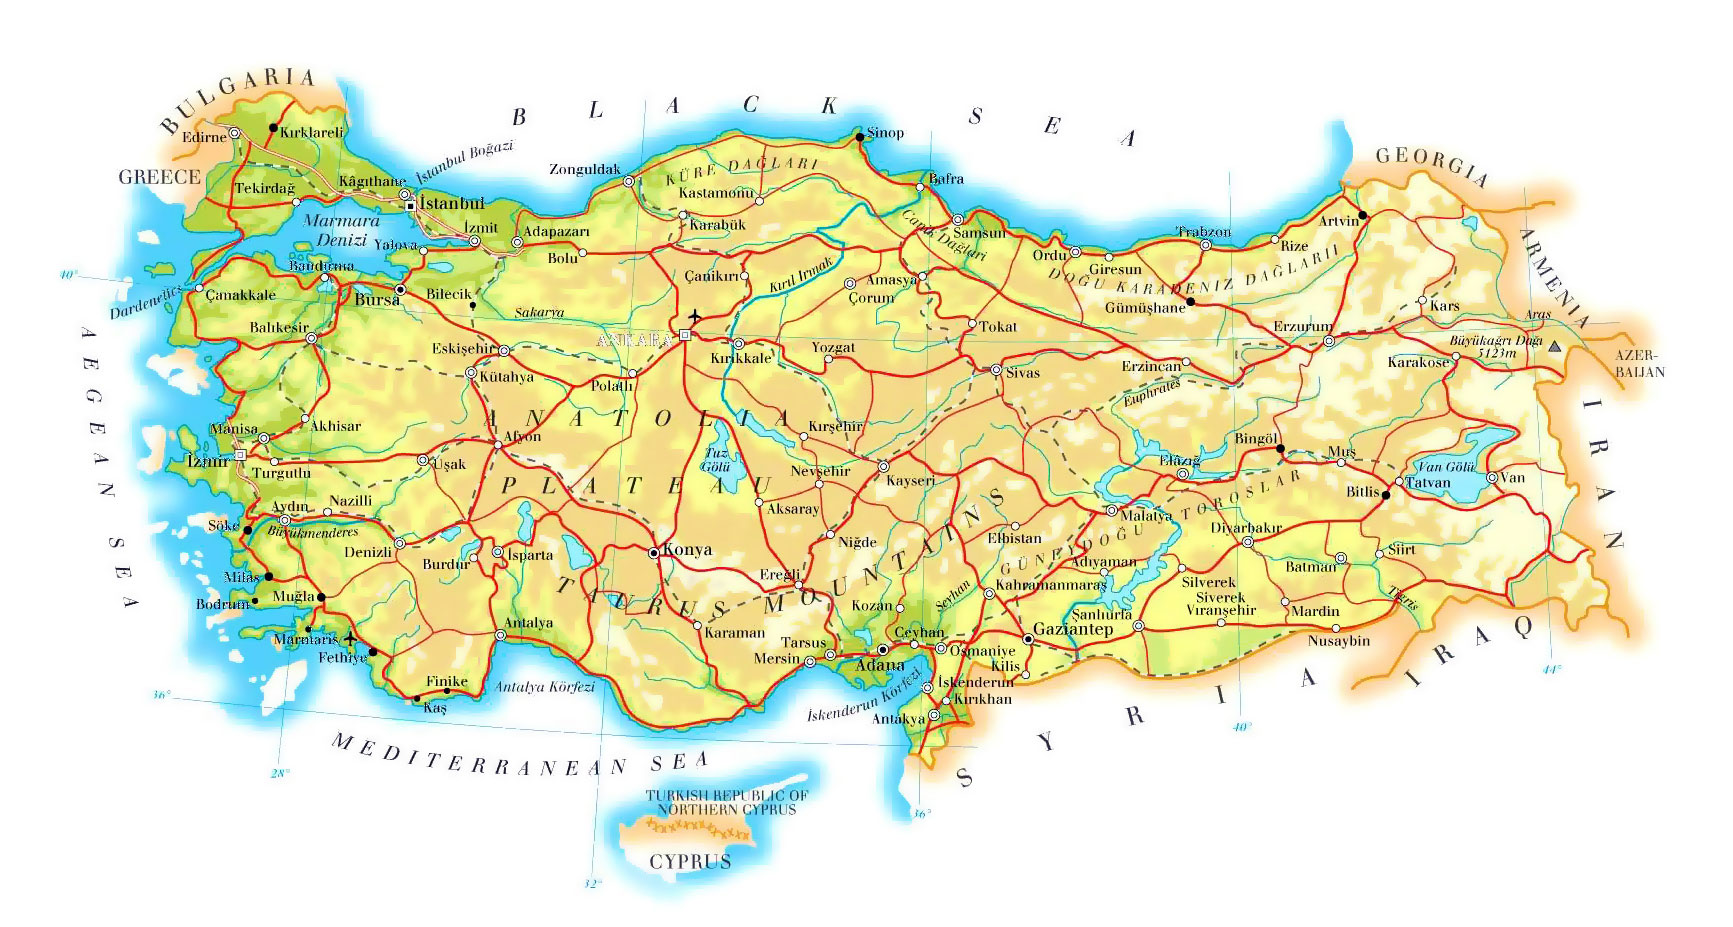 Turkey Geography Map | Steven Andrew Martin | Istanbul webpage | Professor Dr Steven A Martin Learning Adventures